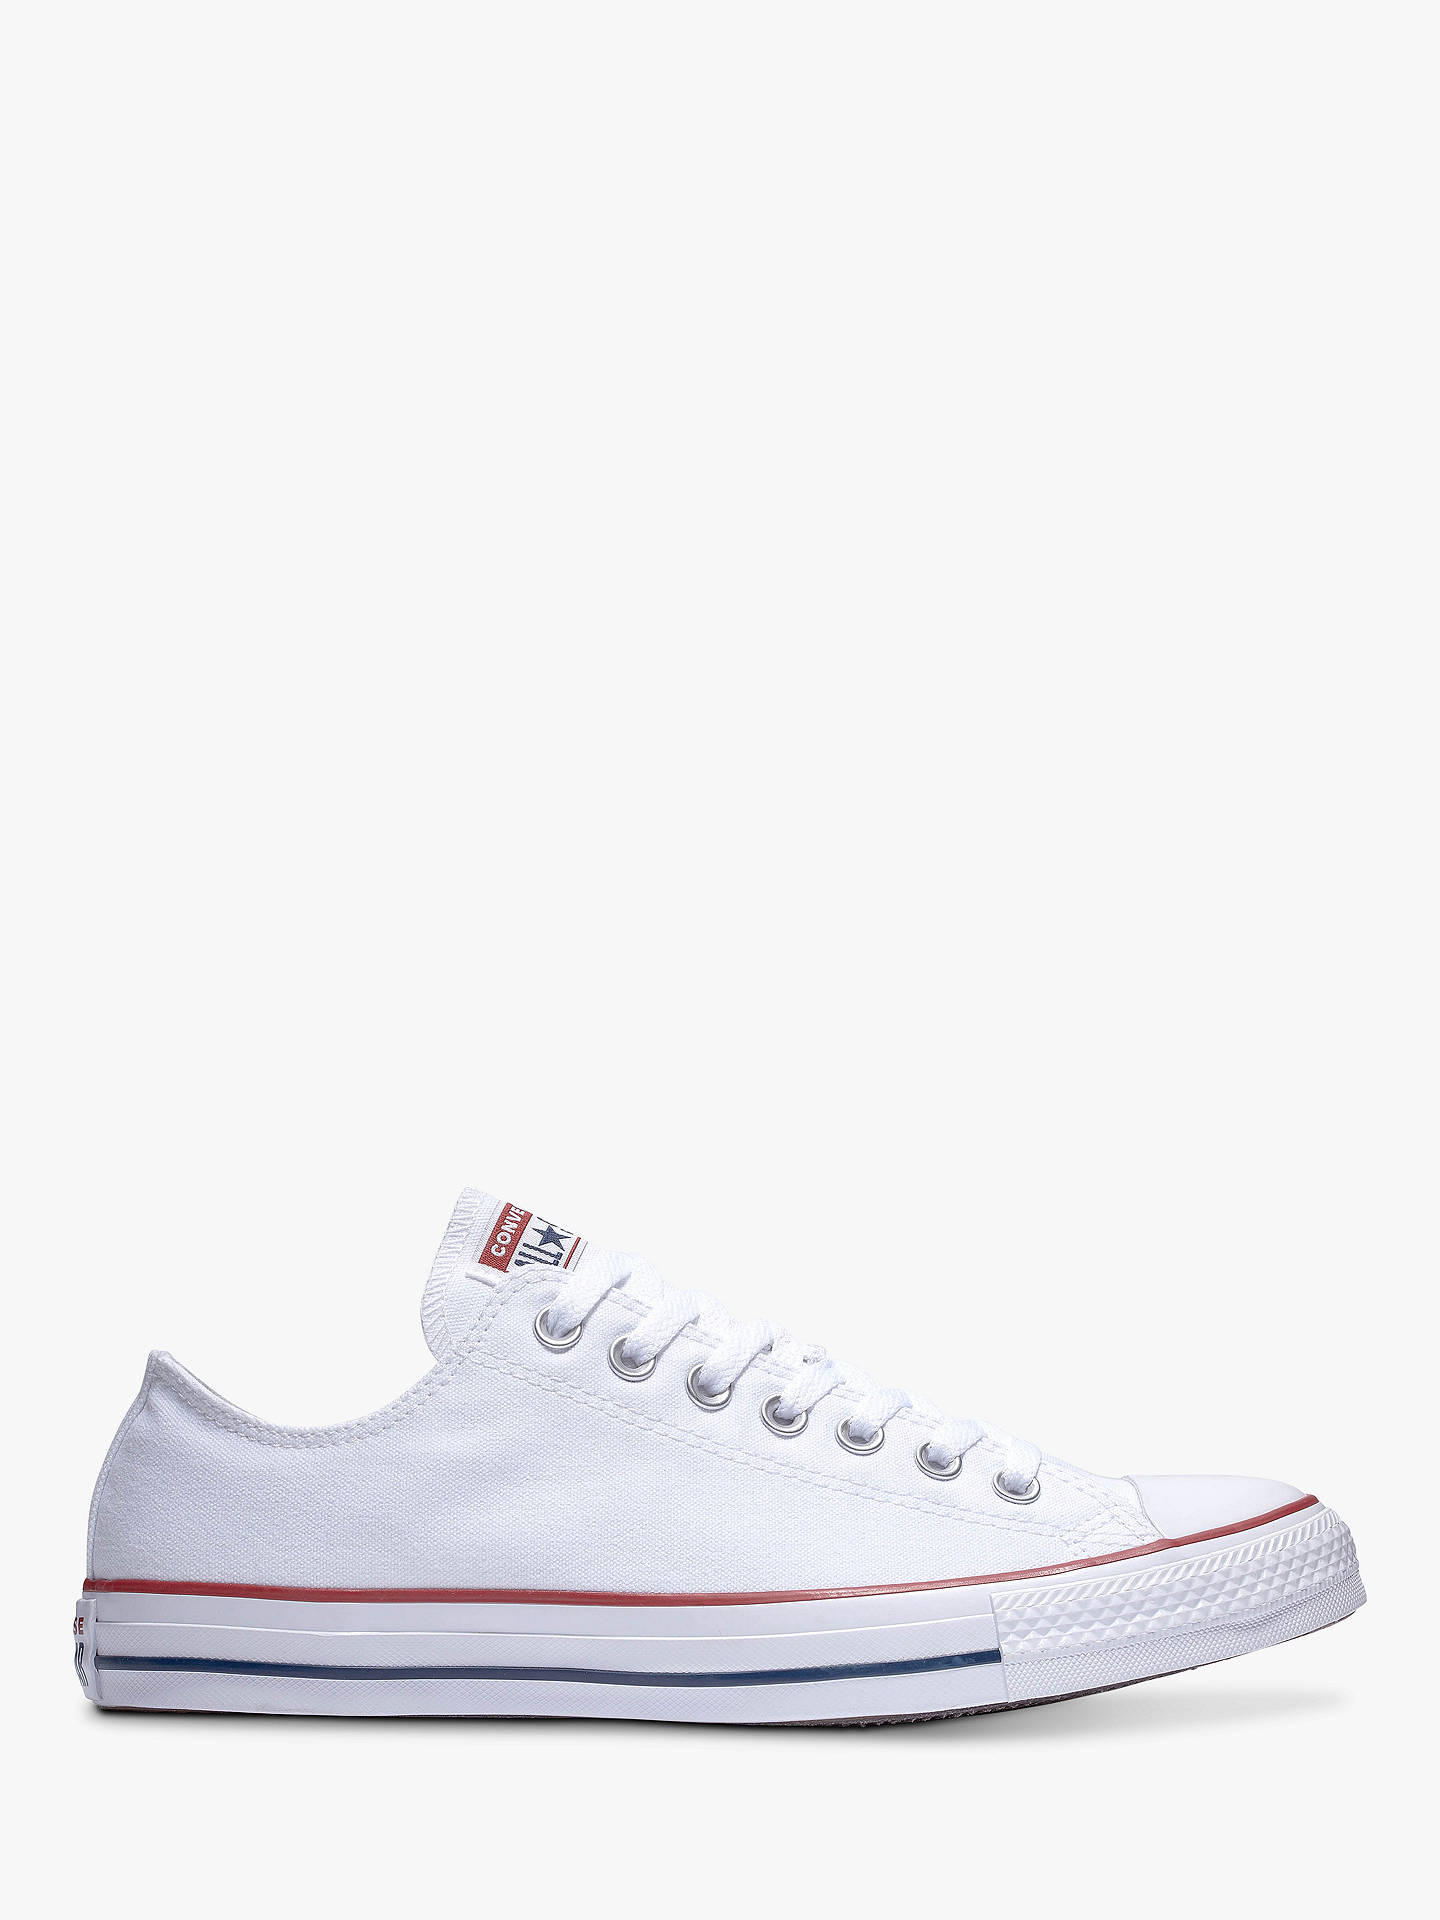 bafb4b382ef0 Converse Chuck Taylor All Star Canvas Ox Low-Top Trainers at John ...